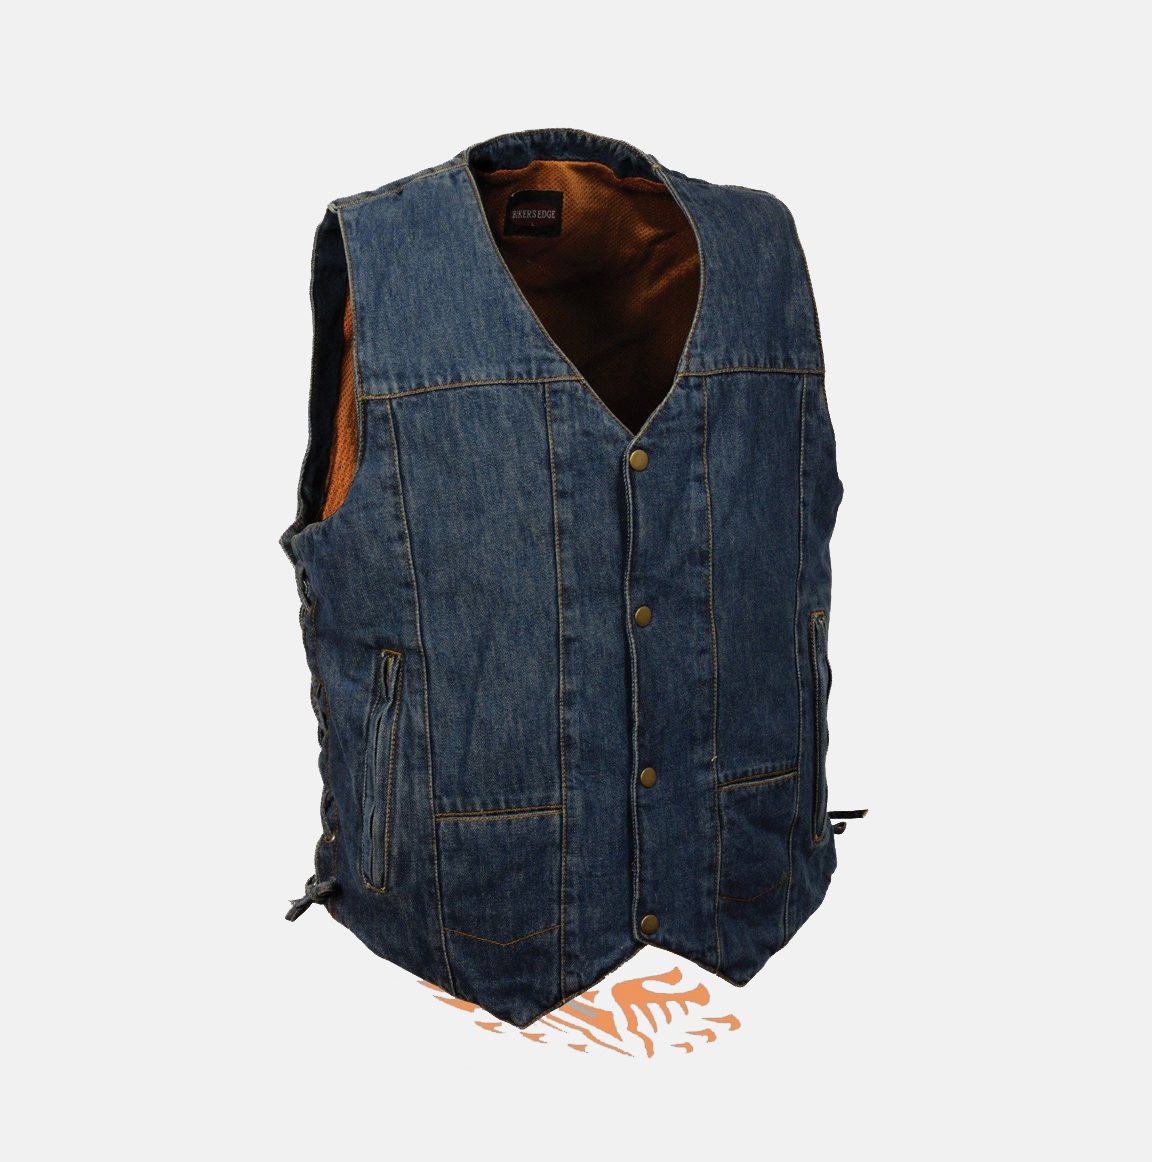 Denim vest: Women's Clothing & Apparel | it24-ieop.gq Online Return Instore · Find A Store Near You · New Arrivals Daily · Style Since Types: Dresses, Handbags, Sunglasses, Tops, and More.